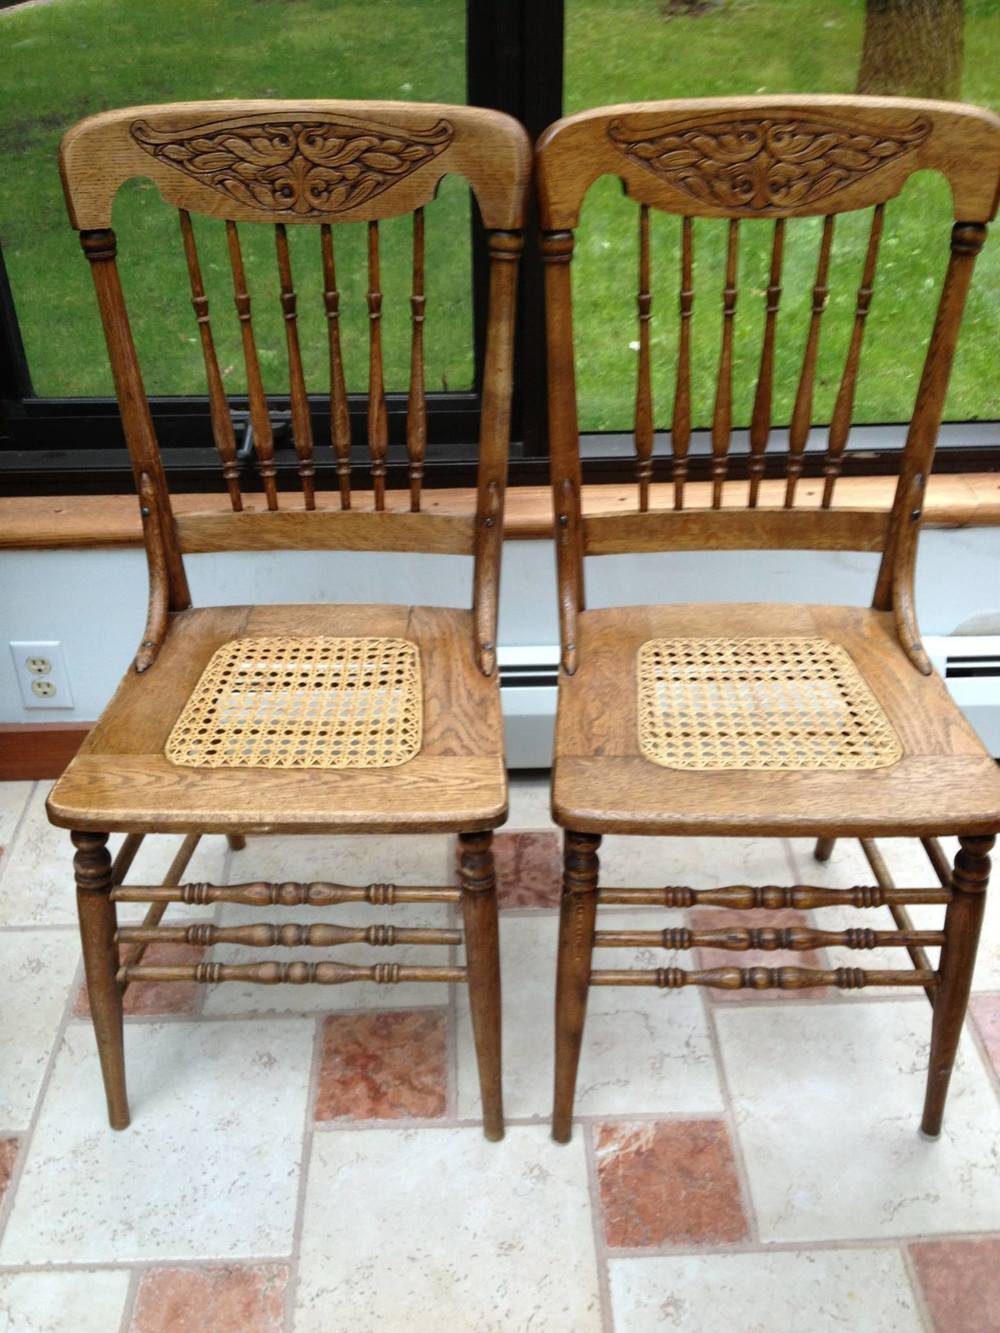 Chairs are oak pressed back